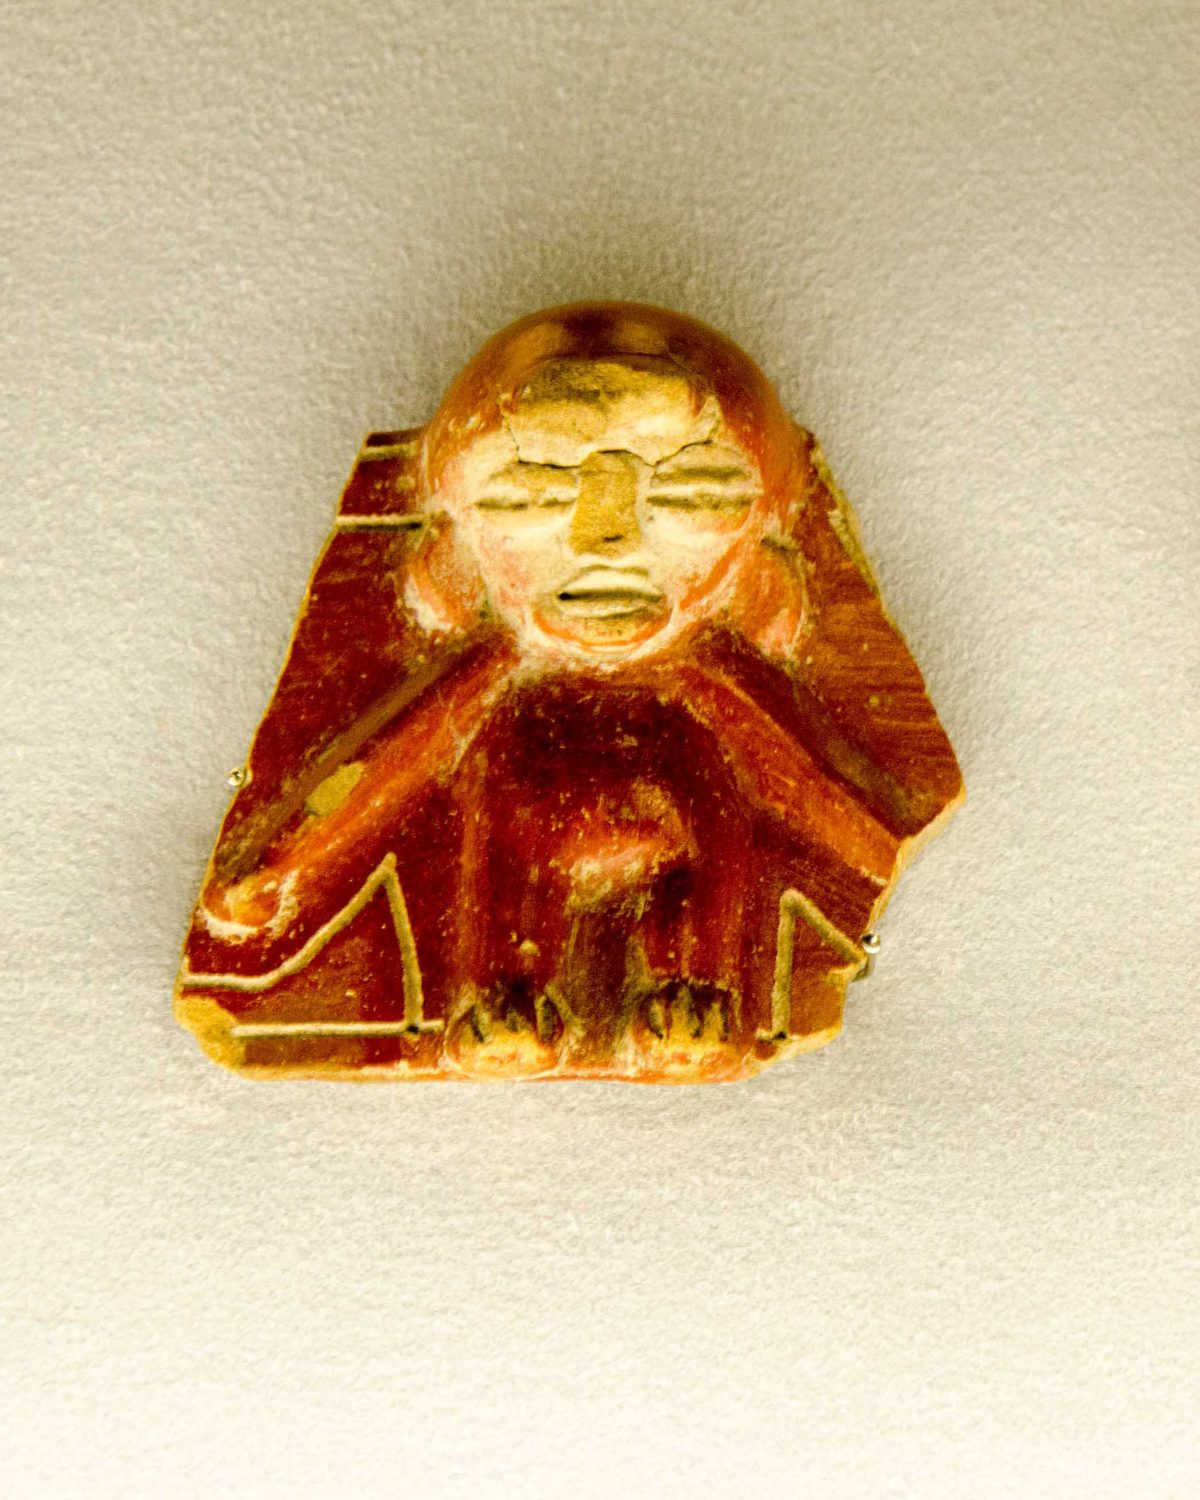 A pottery fragment of displayed at the Weilbauer Museum, La Catolica (PUCE), Quito, Ecuador